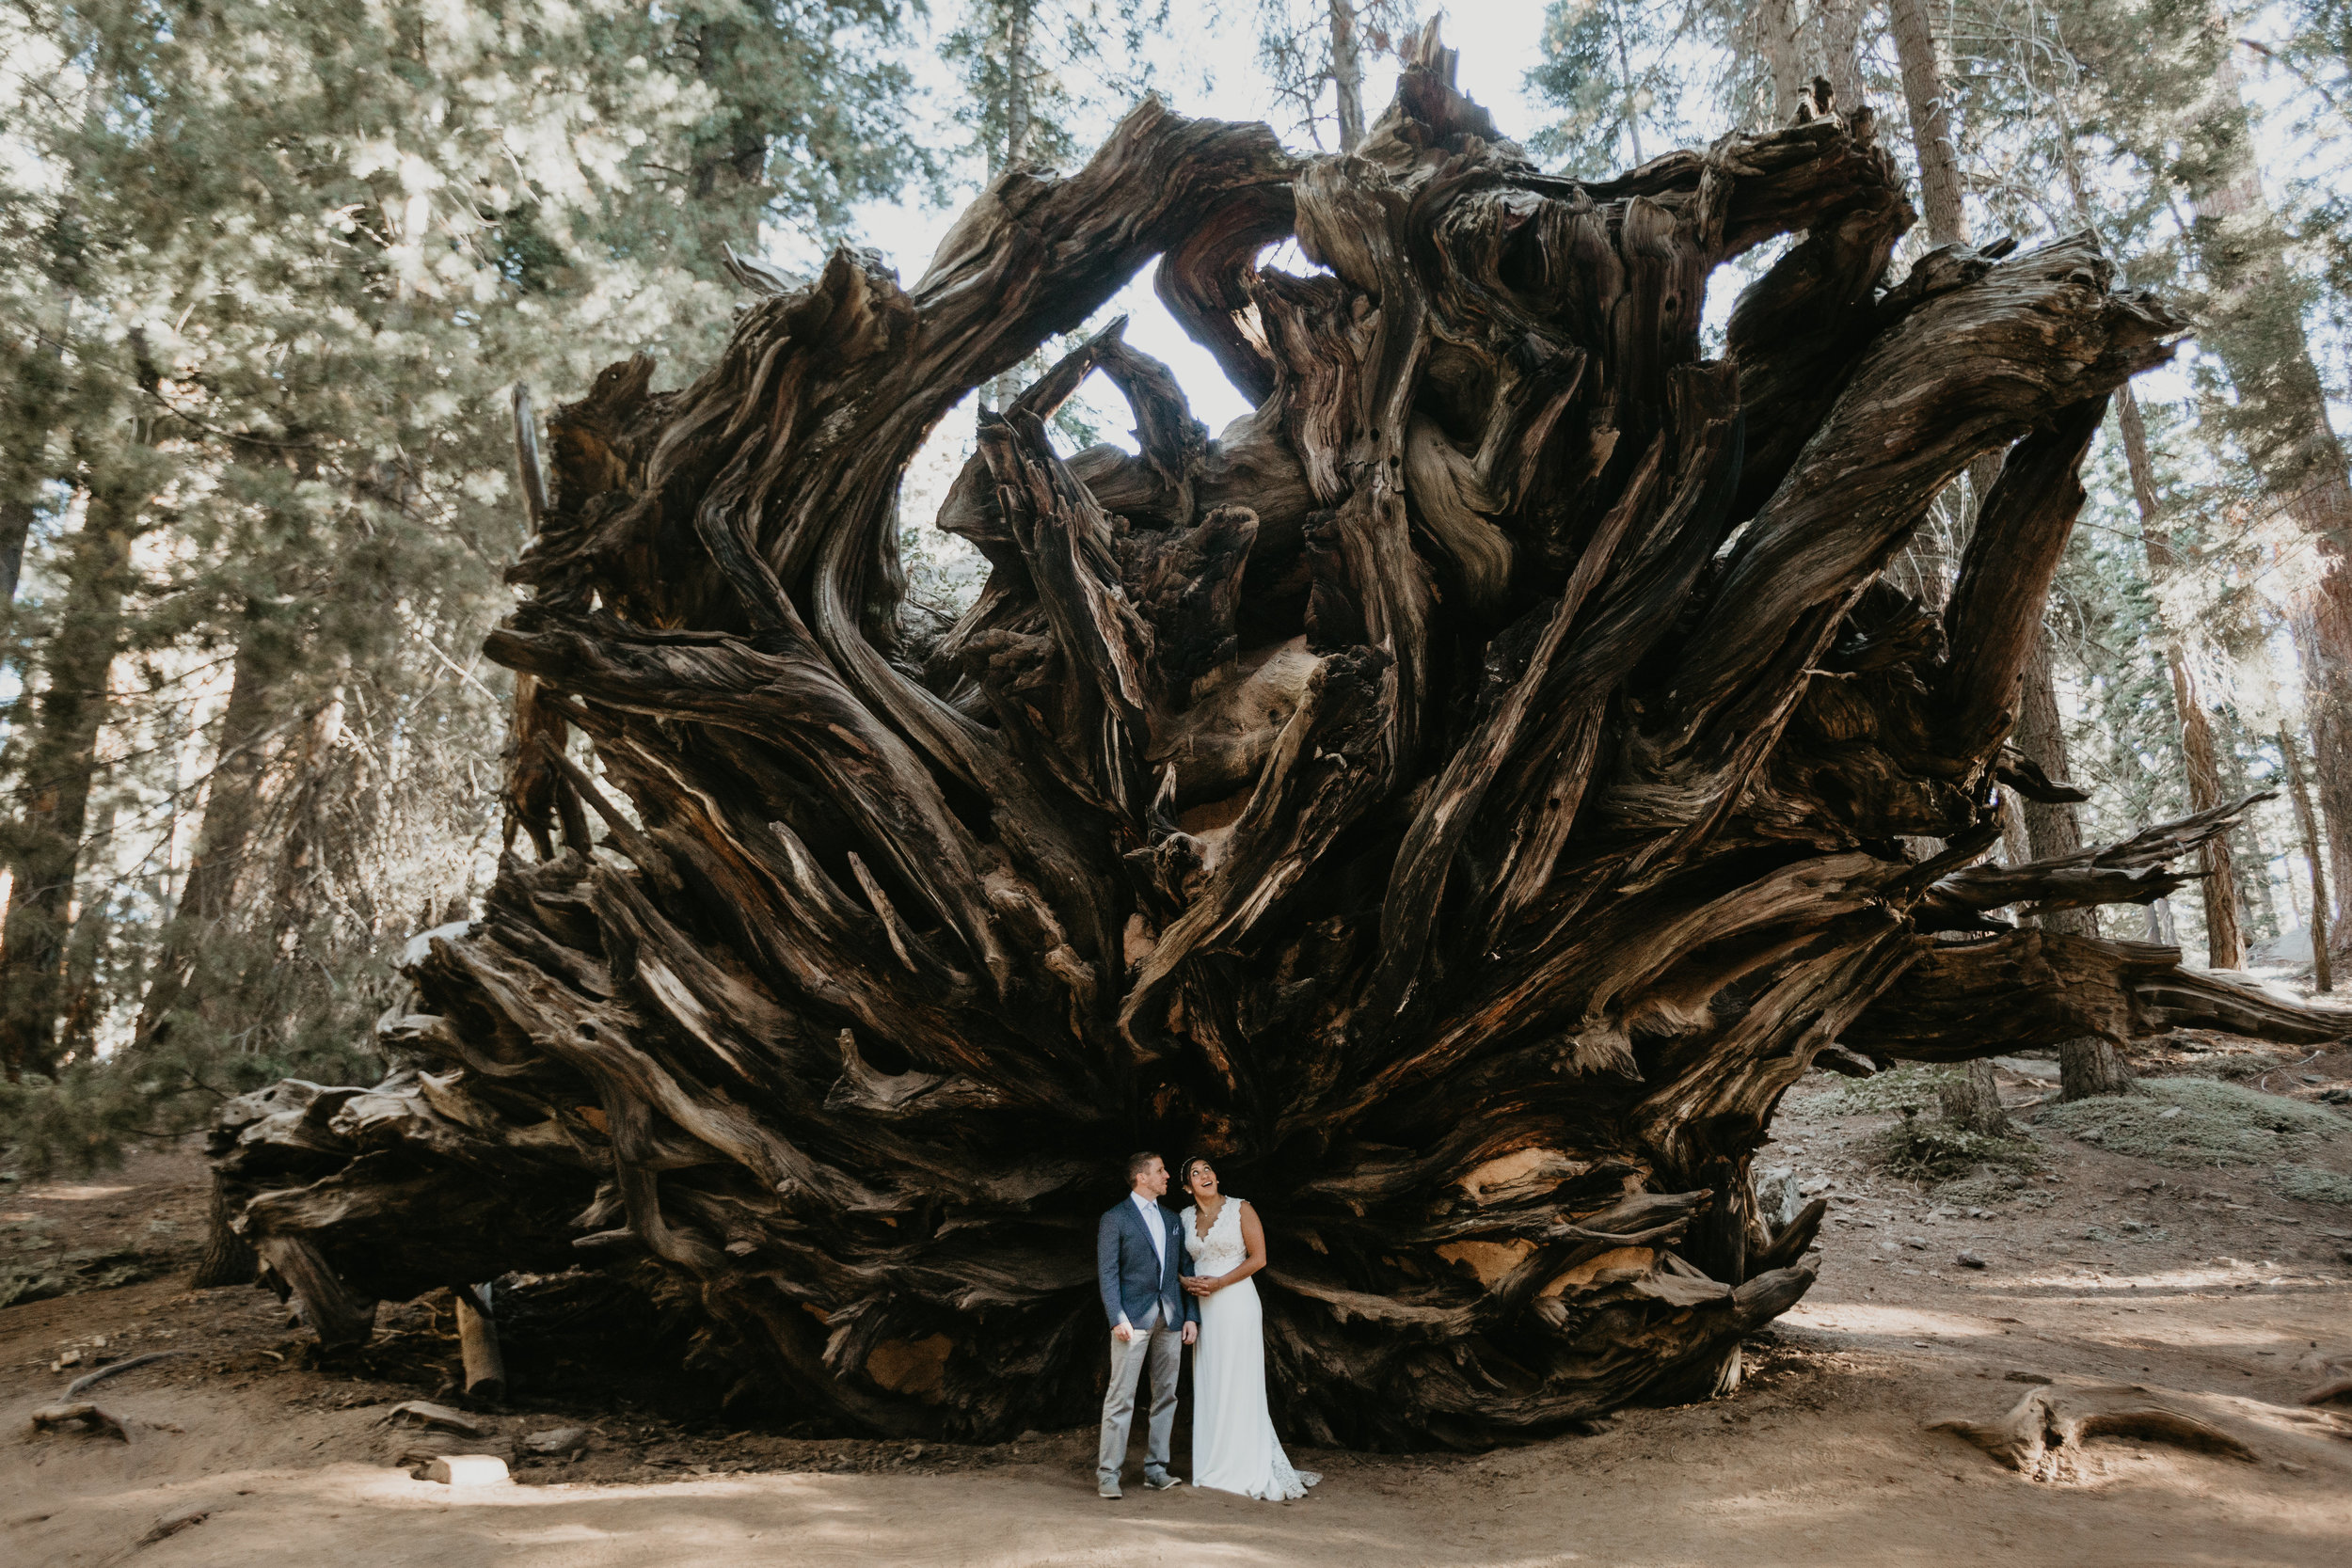 nicole-daacke-photography-sequoia-national-park-adventurous-elopement-sequoia-elopement-photographer-redwoods-california-intimate-wedding-photographer-10.jpg